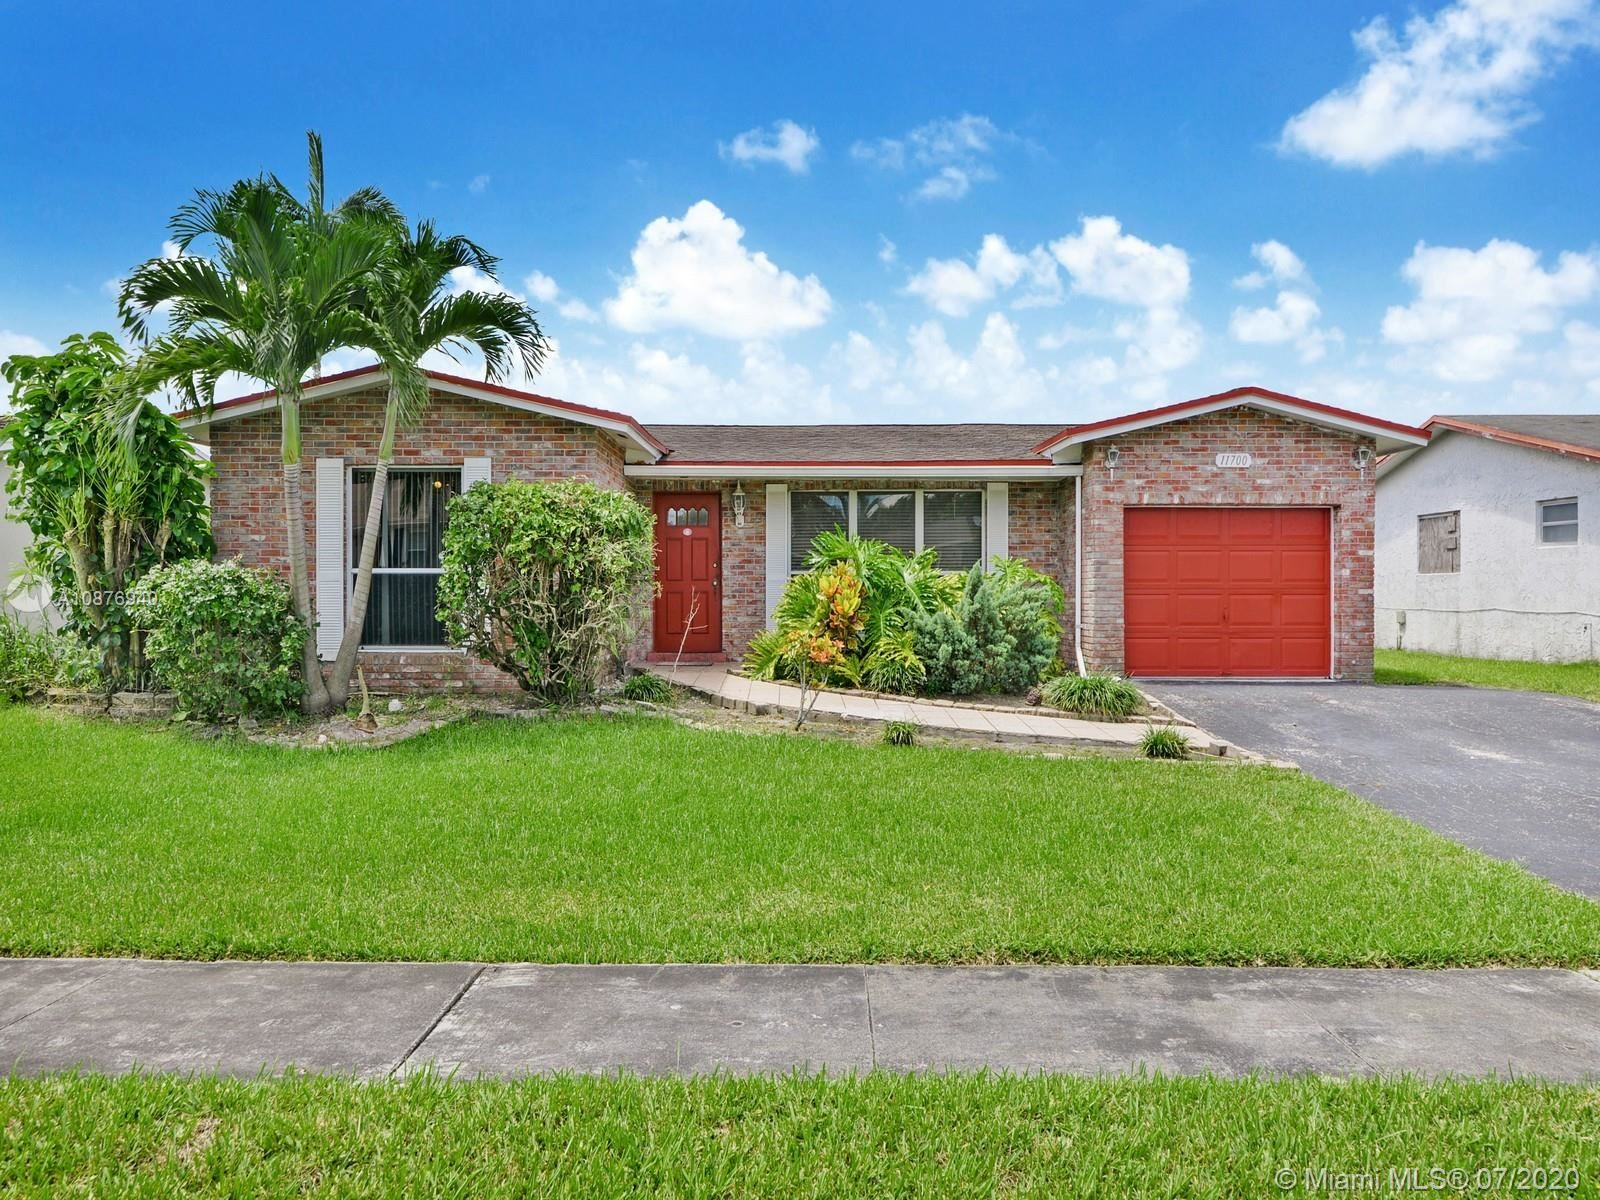 11700 NW 32nd Mnr, Sunrise, FL 33323 - #: A10876940